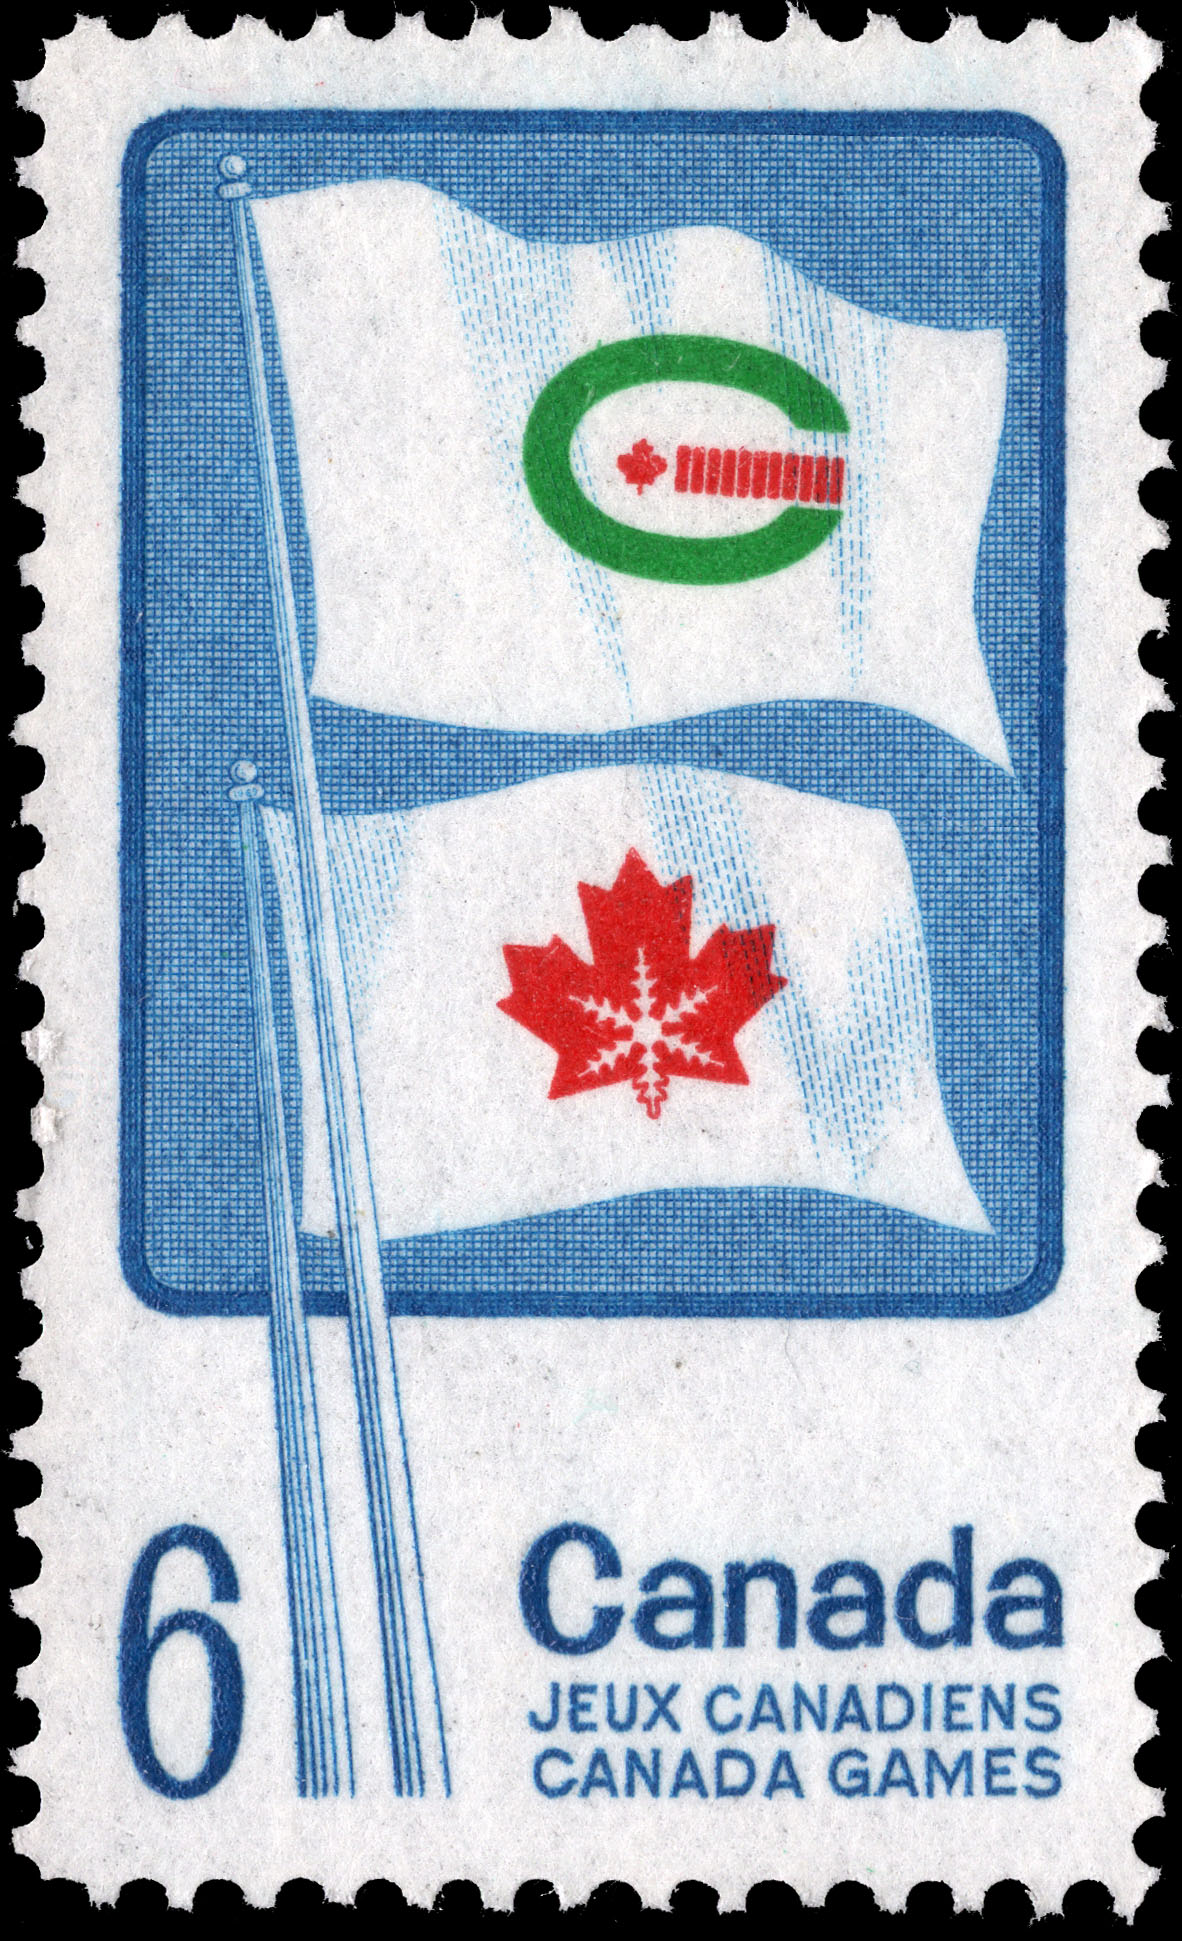 Canada Games Canada Postage Stamp